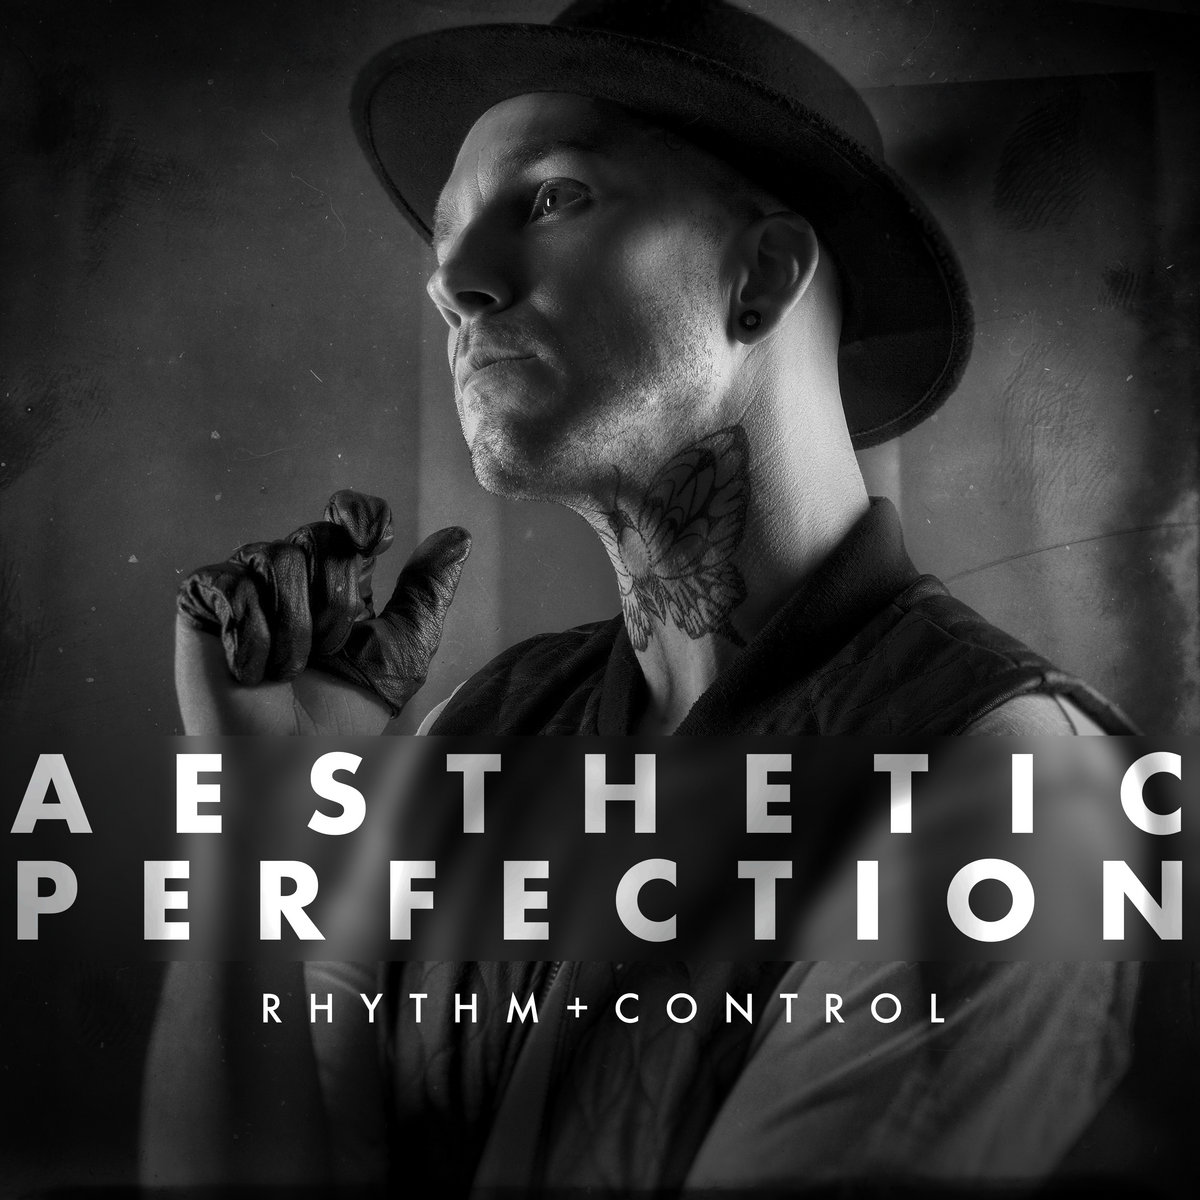 aesthetic perfection discography